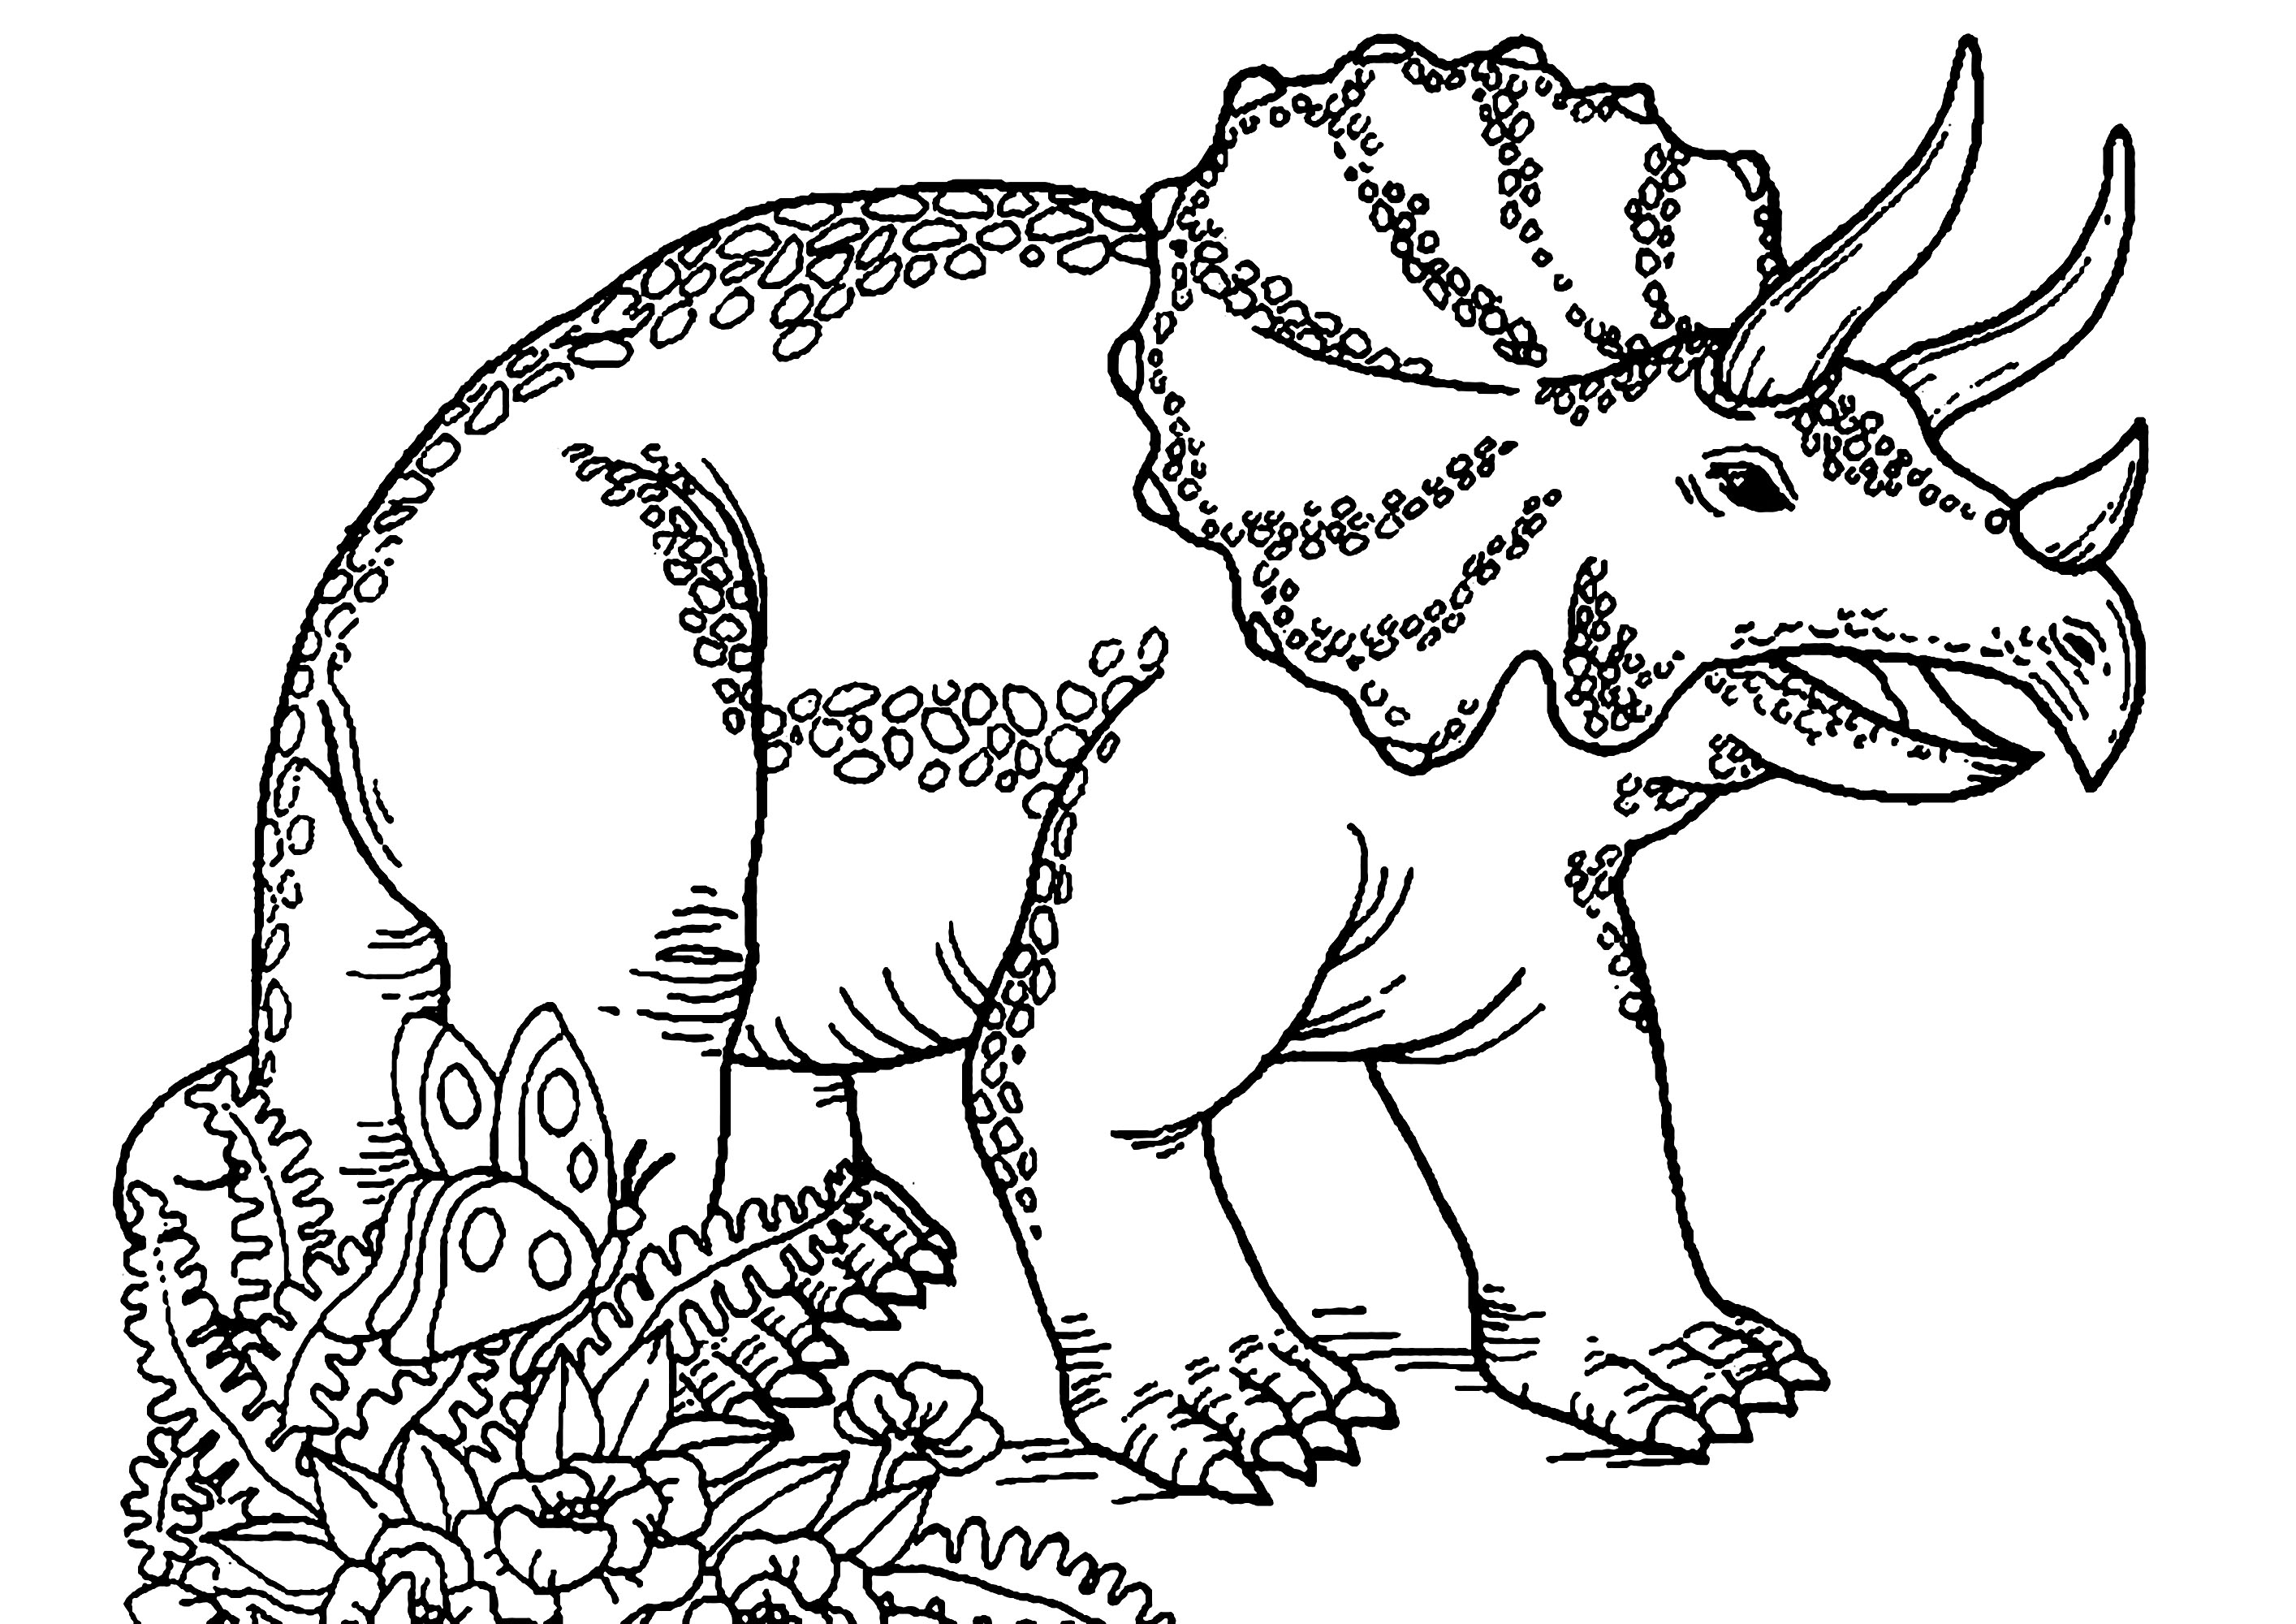 dinosaur printable pictures coloring pages dinosaur free printable coloring pages pictures printable dinosaur